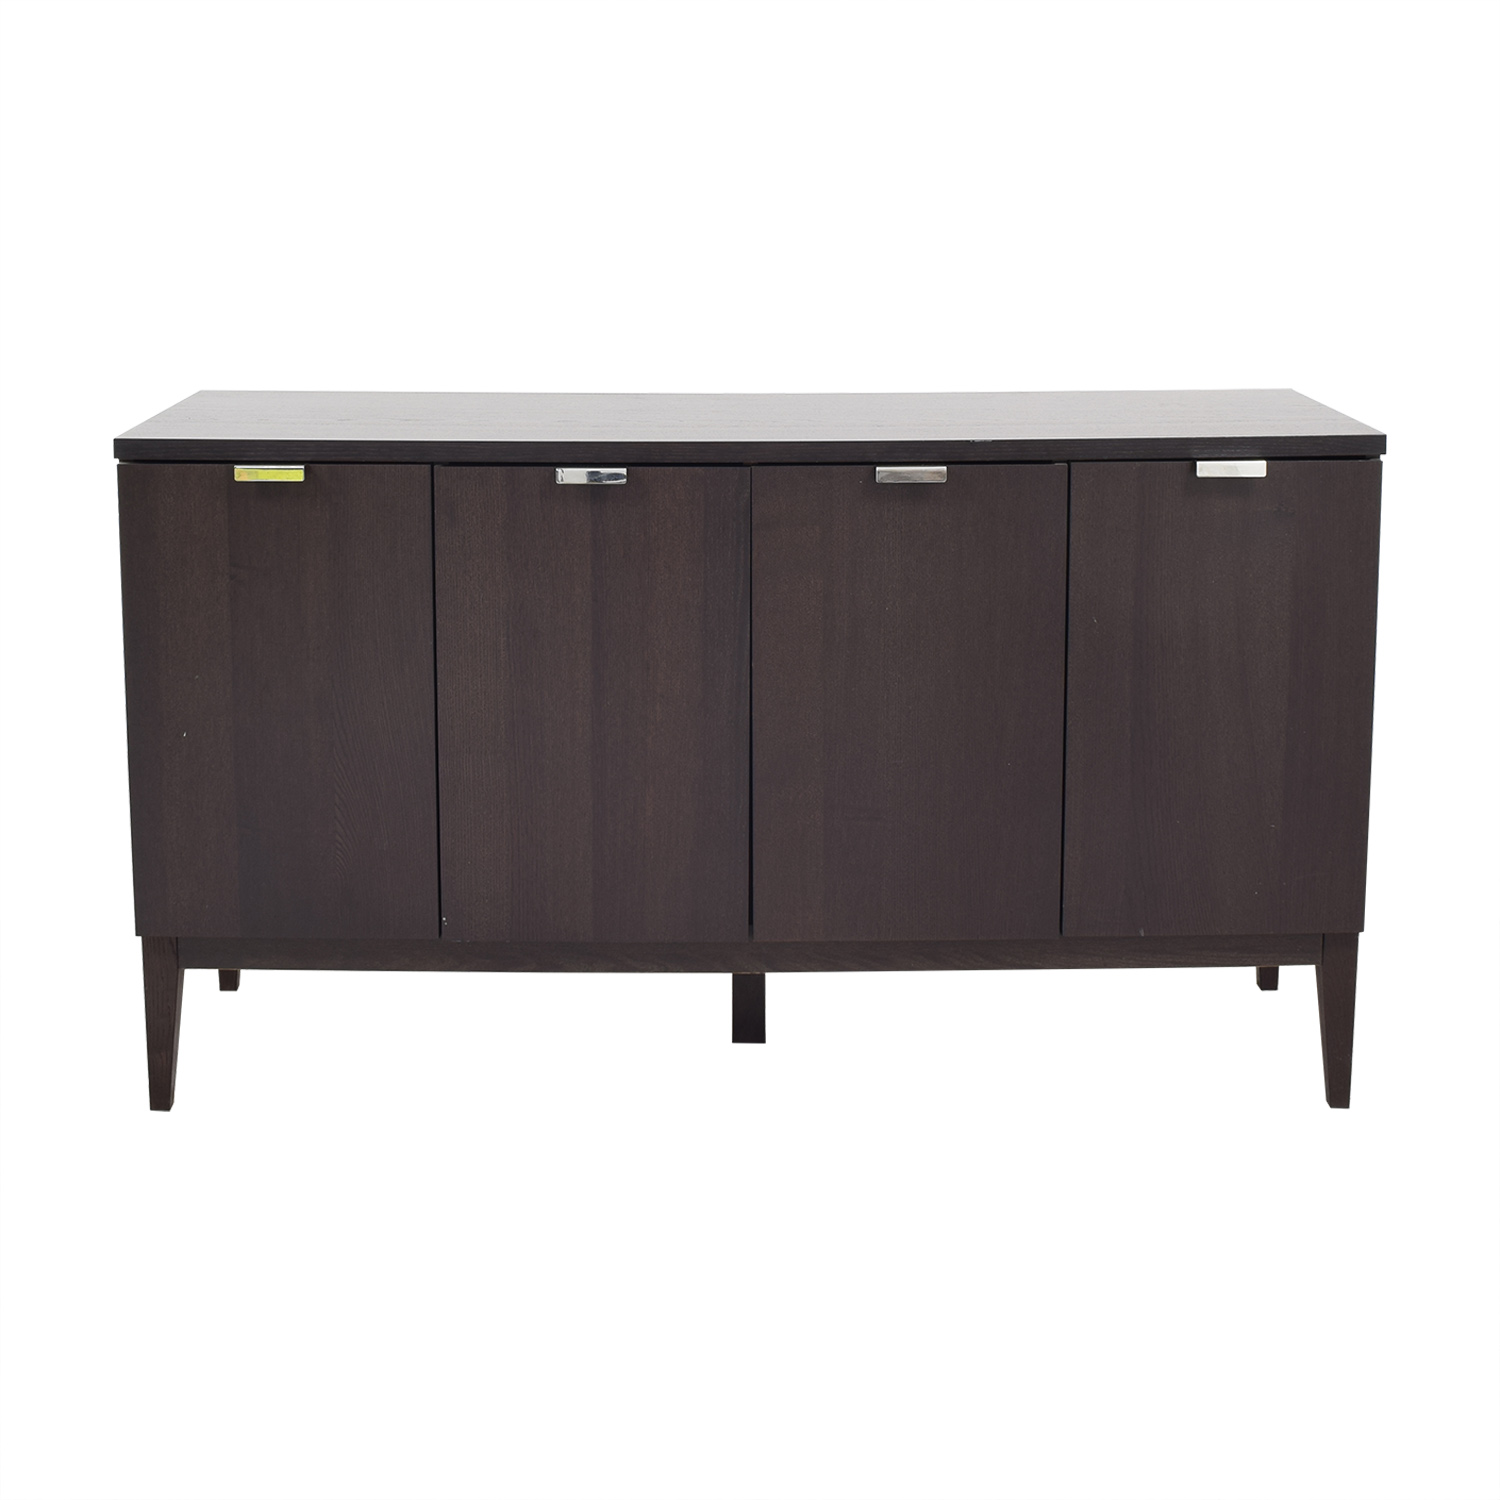 Crate & Barrel Crate & Barrel Credenza for sale